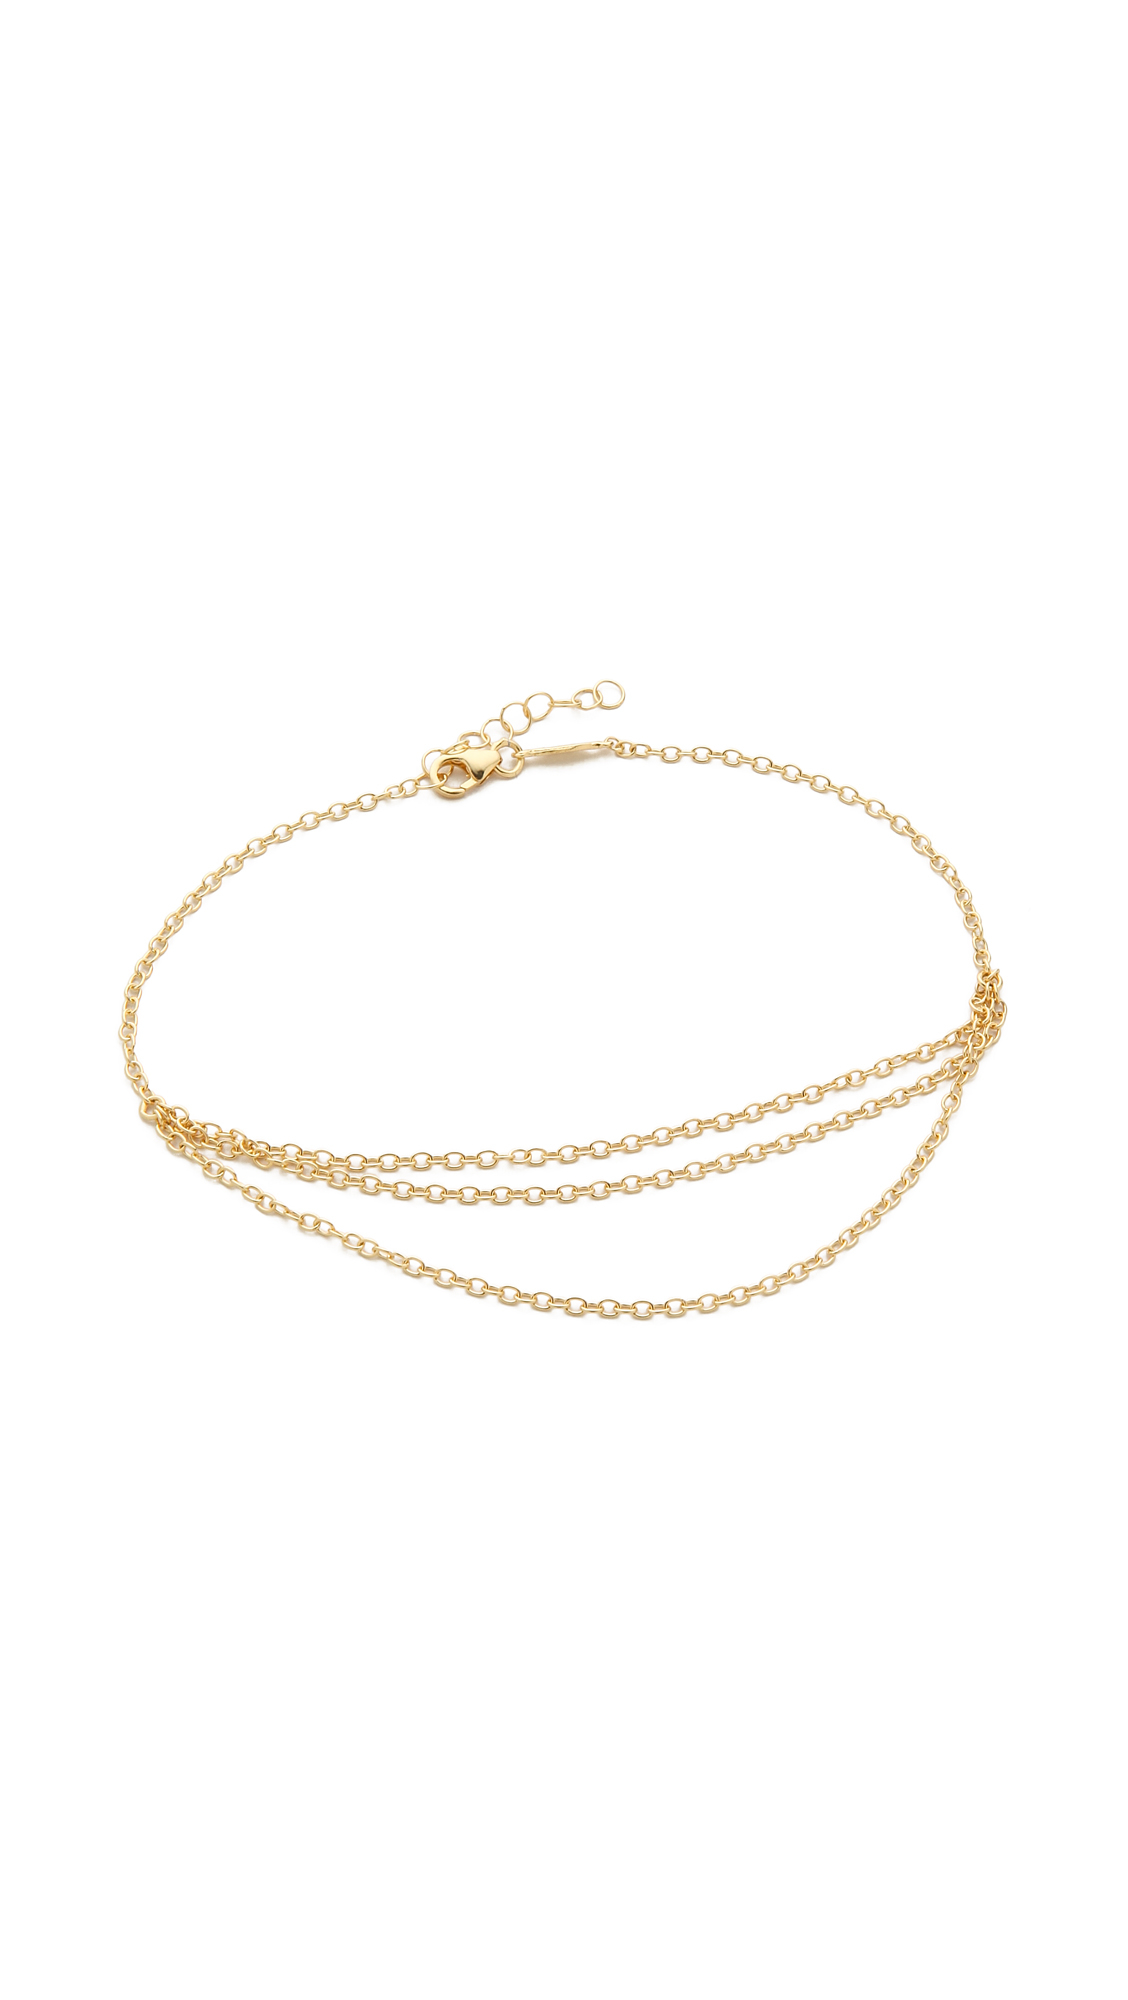 loren lyst stewart women gold karat jewelry s anklet in metallic